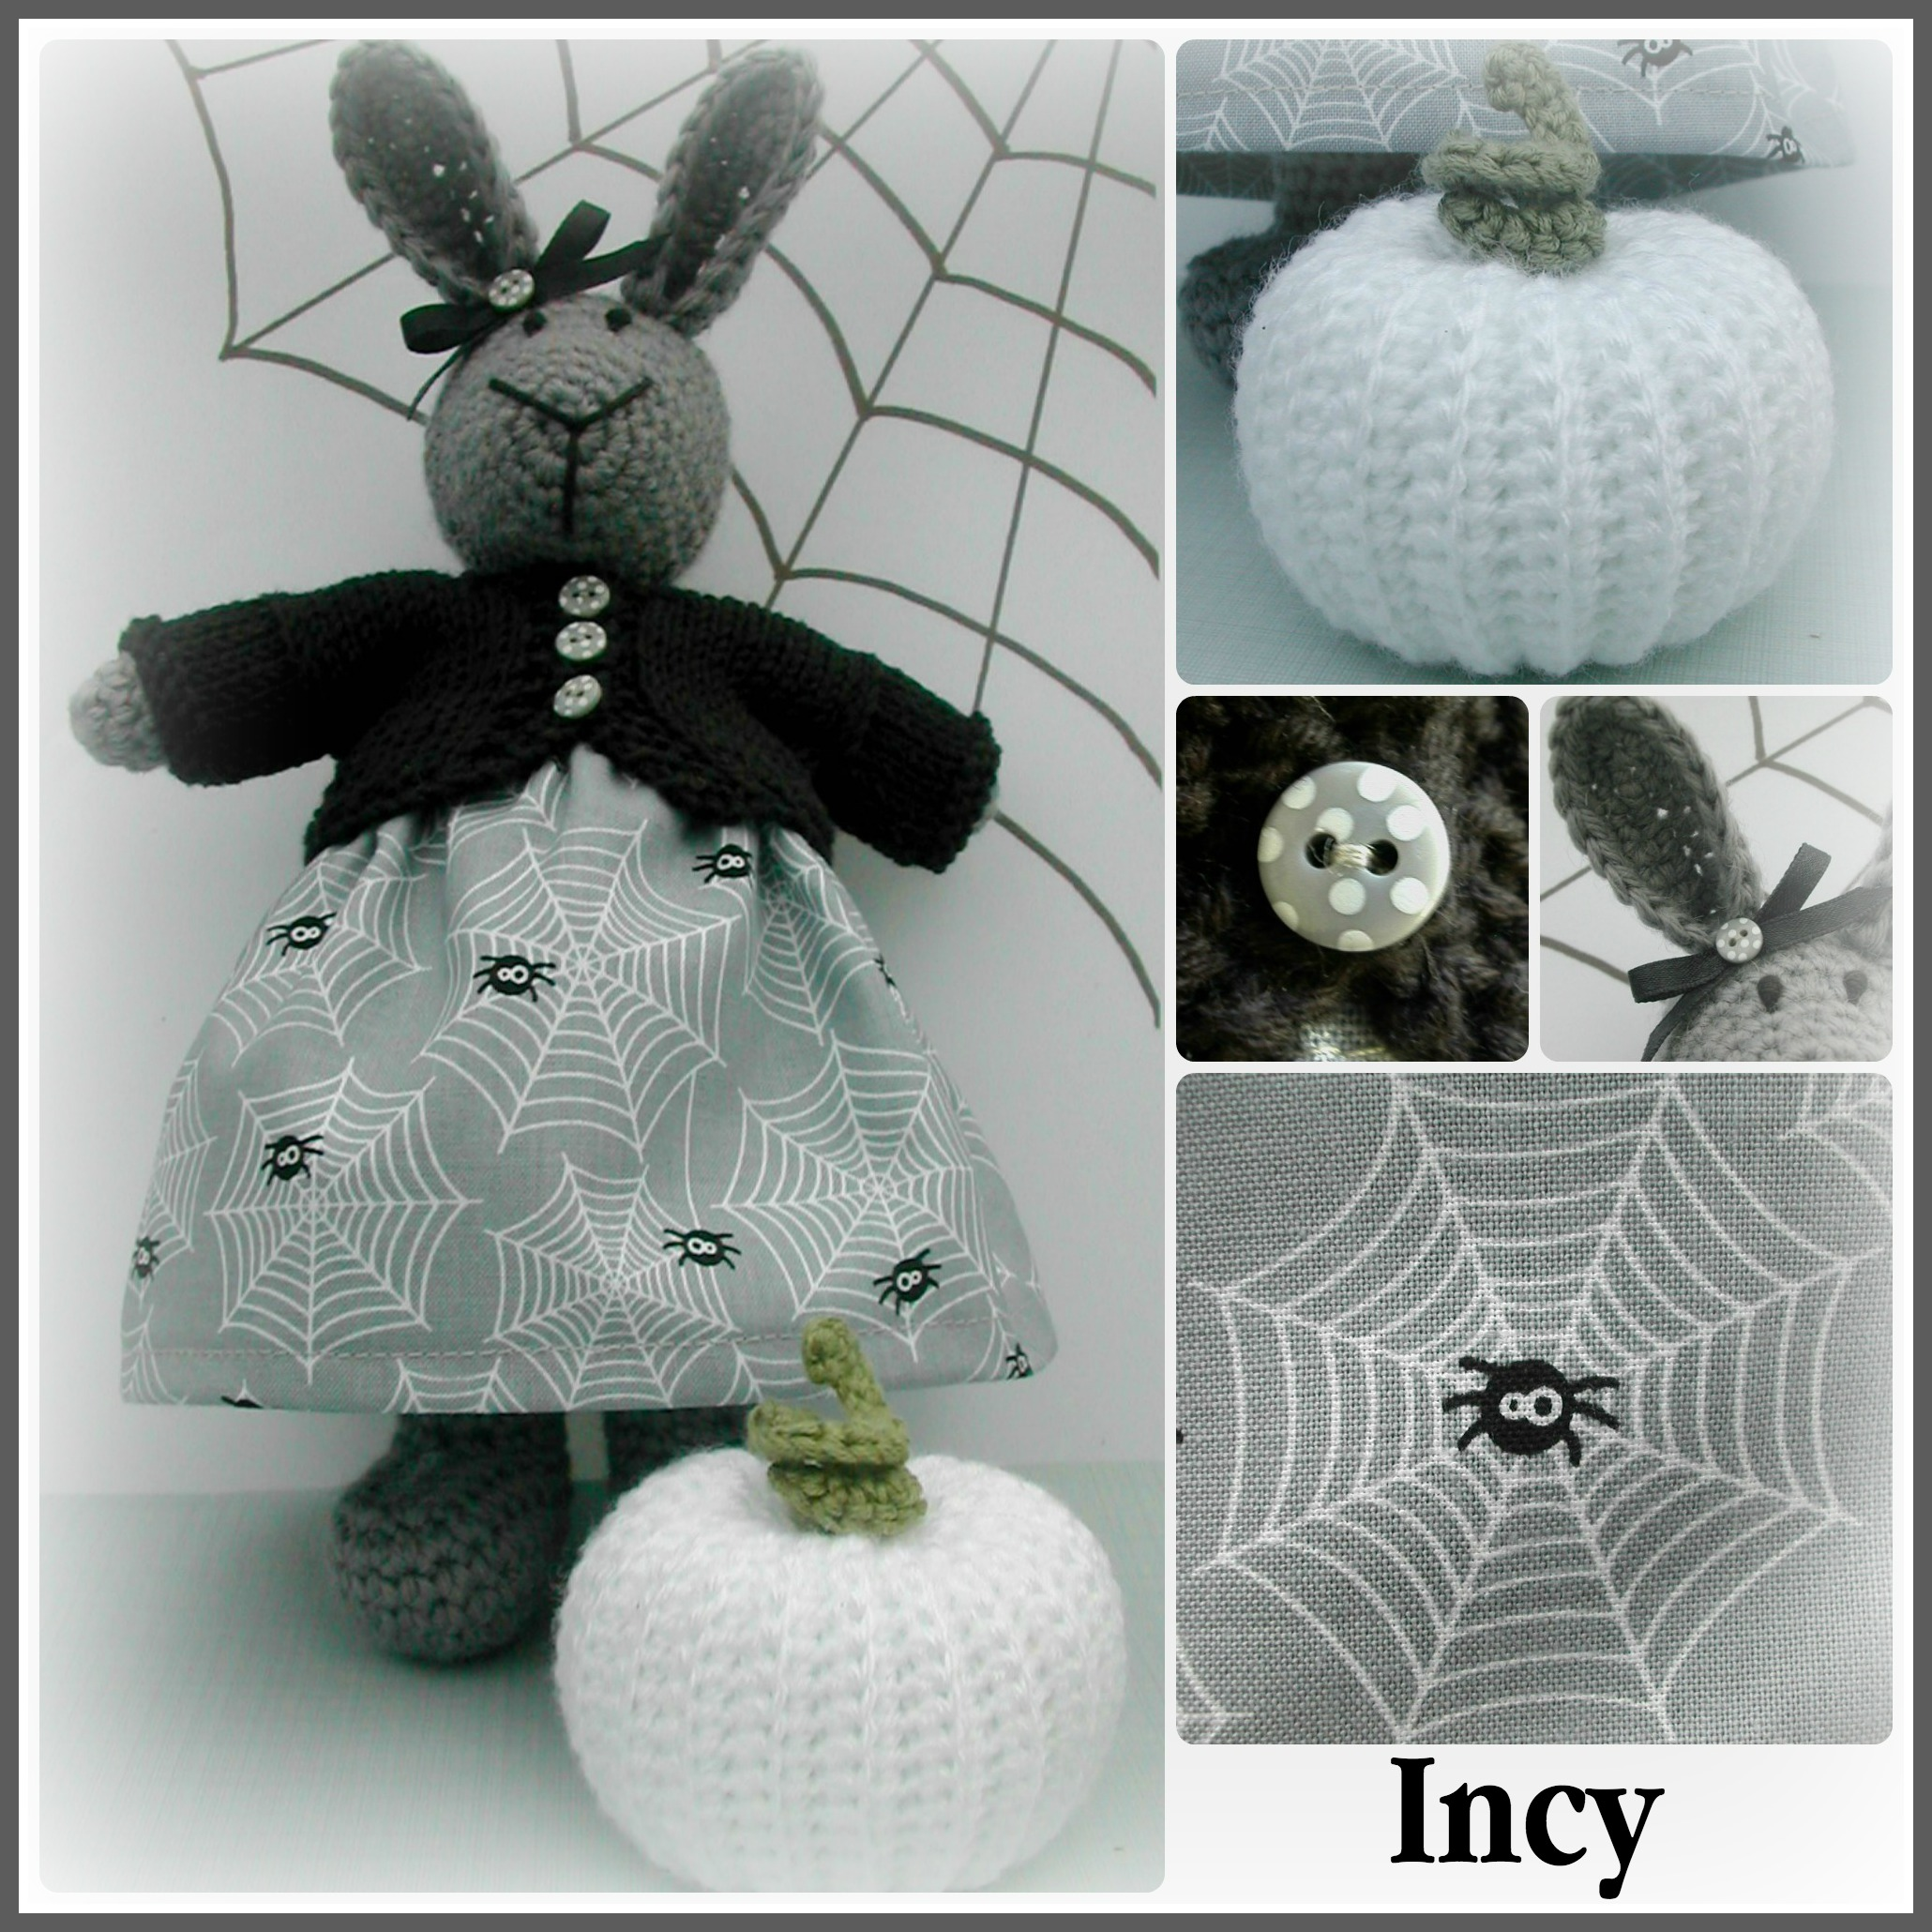 incy-collage